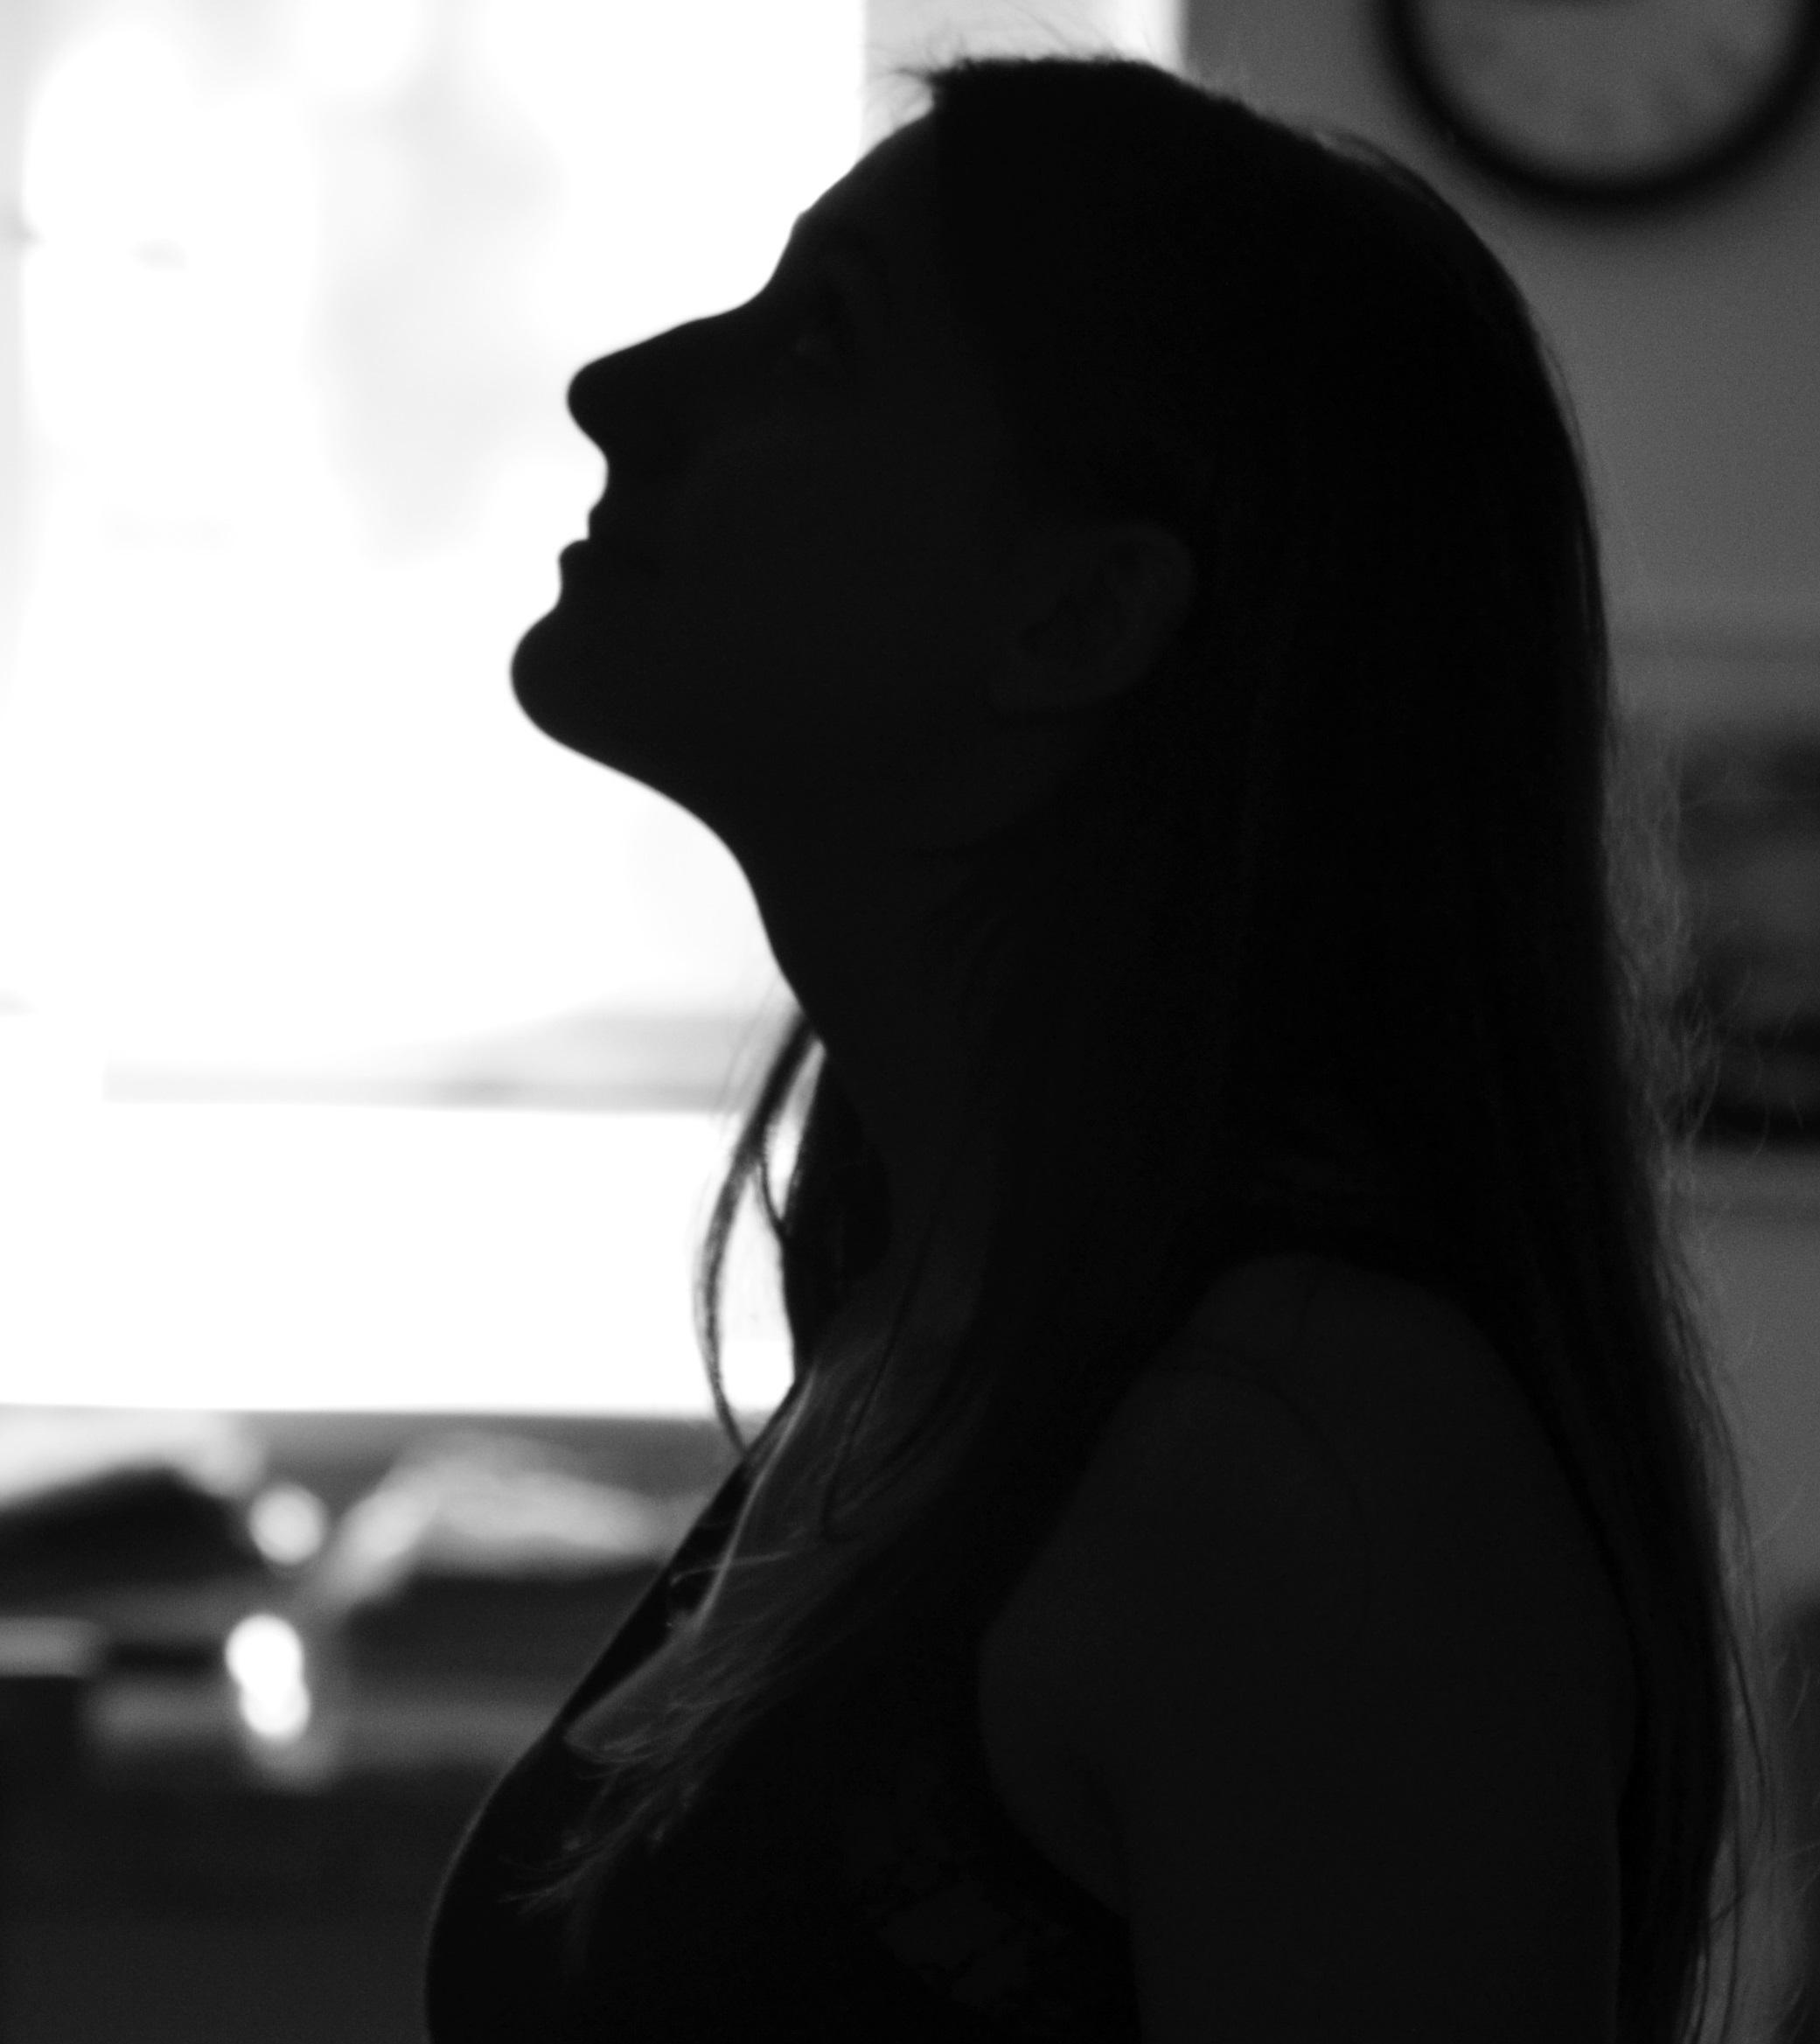 11-10-2018_19-21-131__silhouette-black-and-white-people-girl-woman-white-1027835-pxhere.com_-1